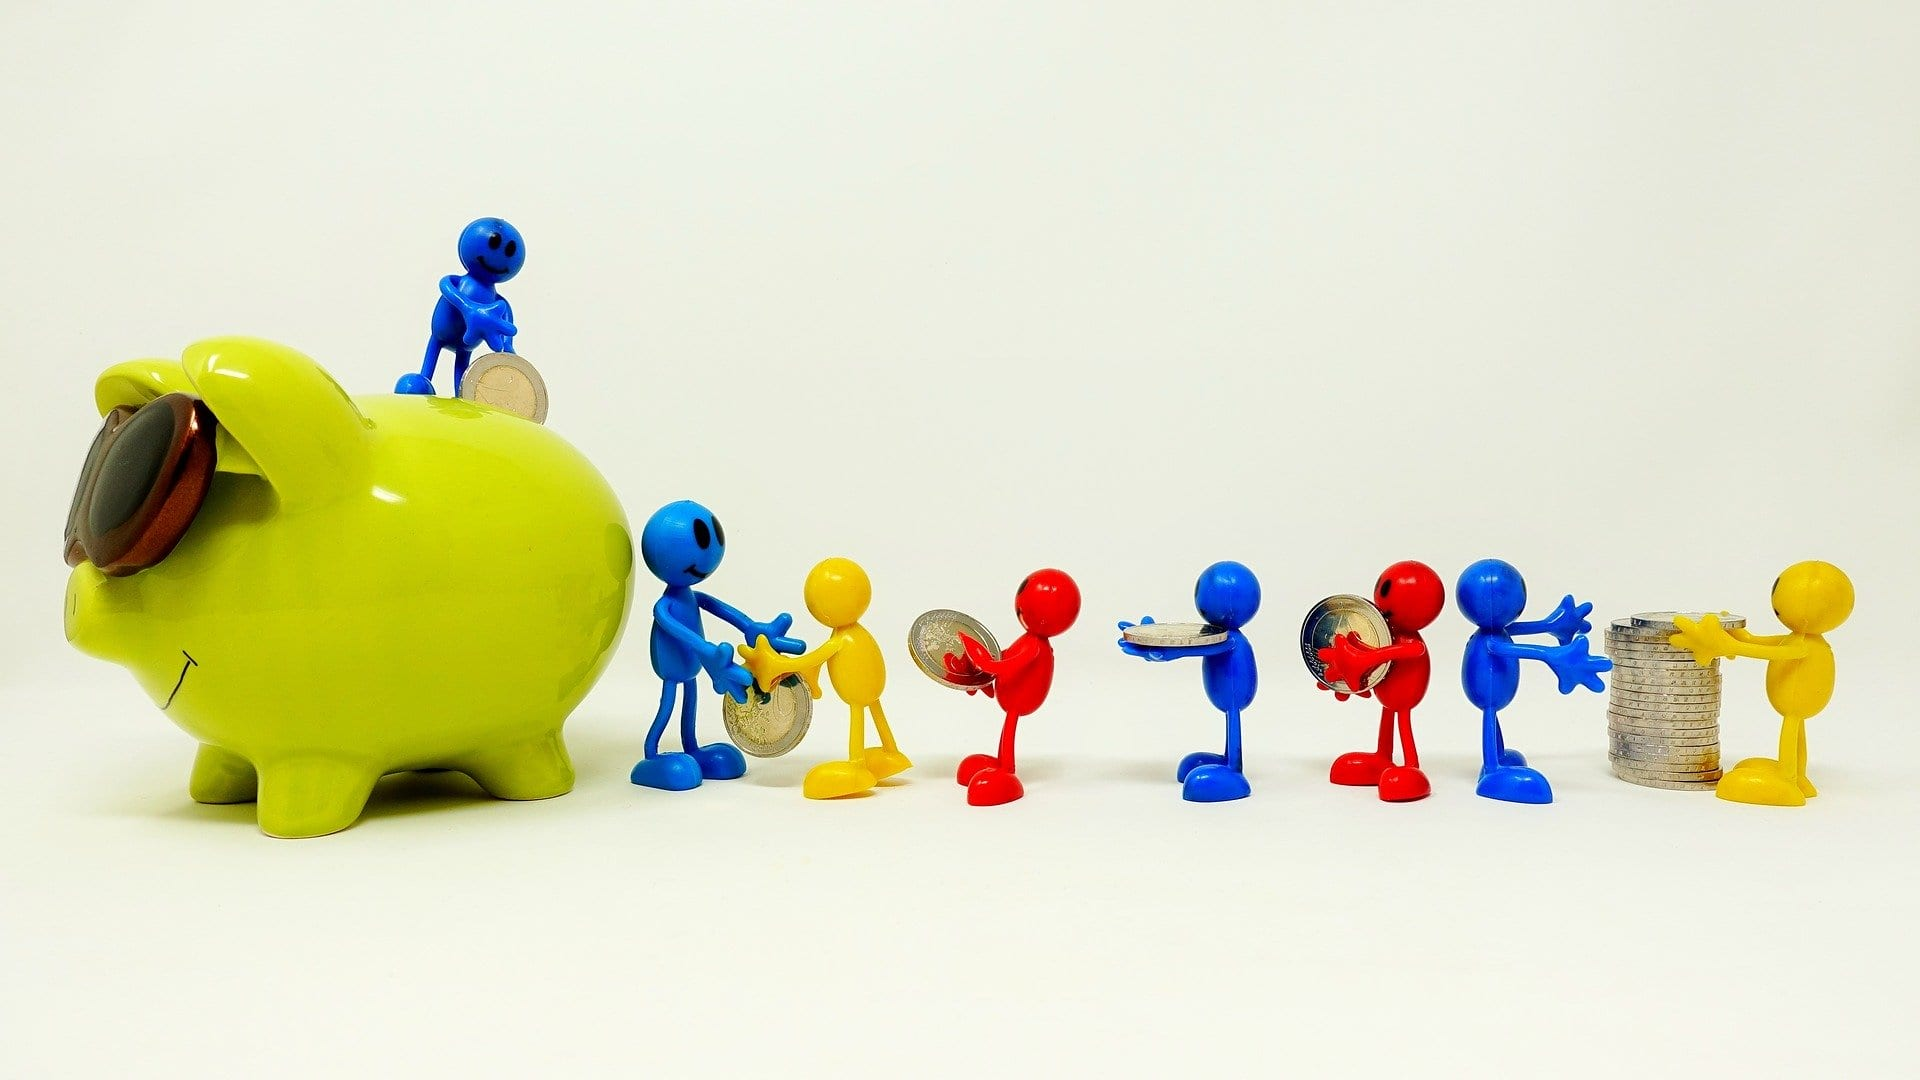 What are the benefits of depositing money in Bank